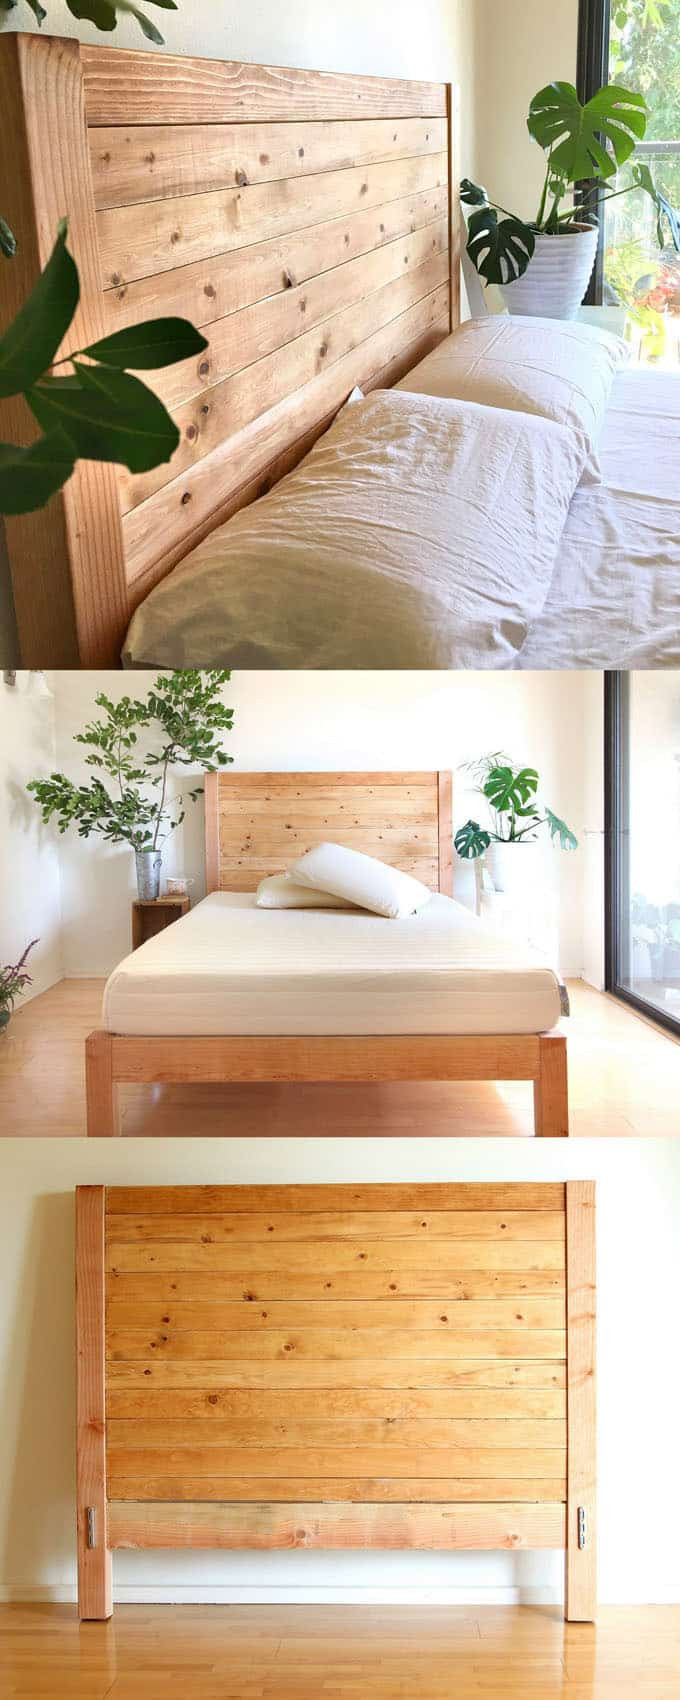 Best ideas about DIY Wood Headboard Plans . Save or Pin Easy and Beautiful Wood DIY Headboard A Piece Rainbow Now.